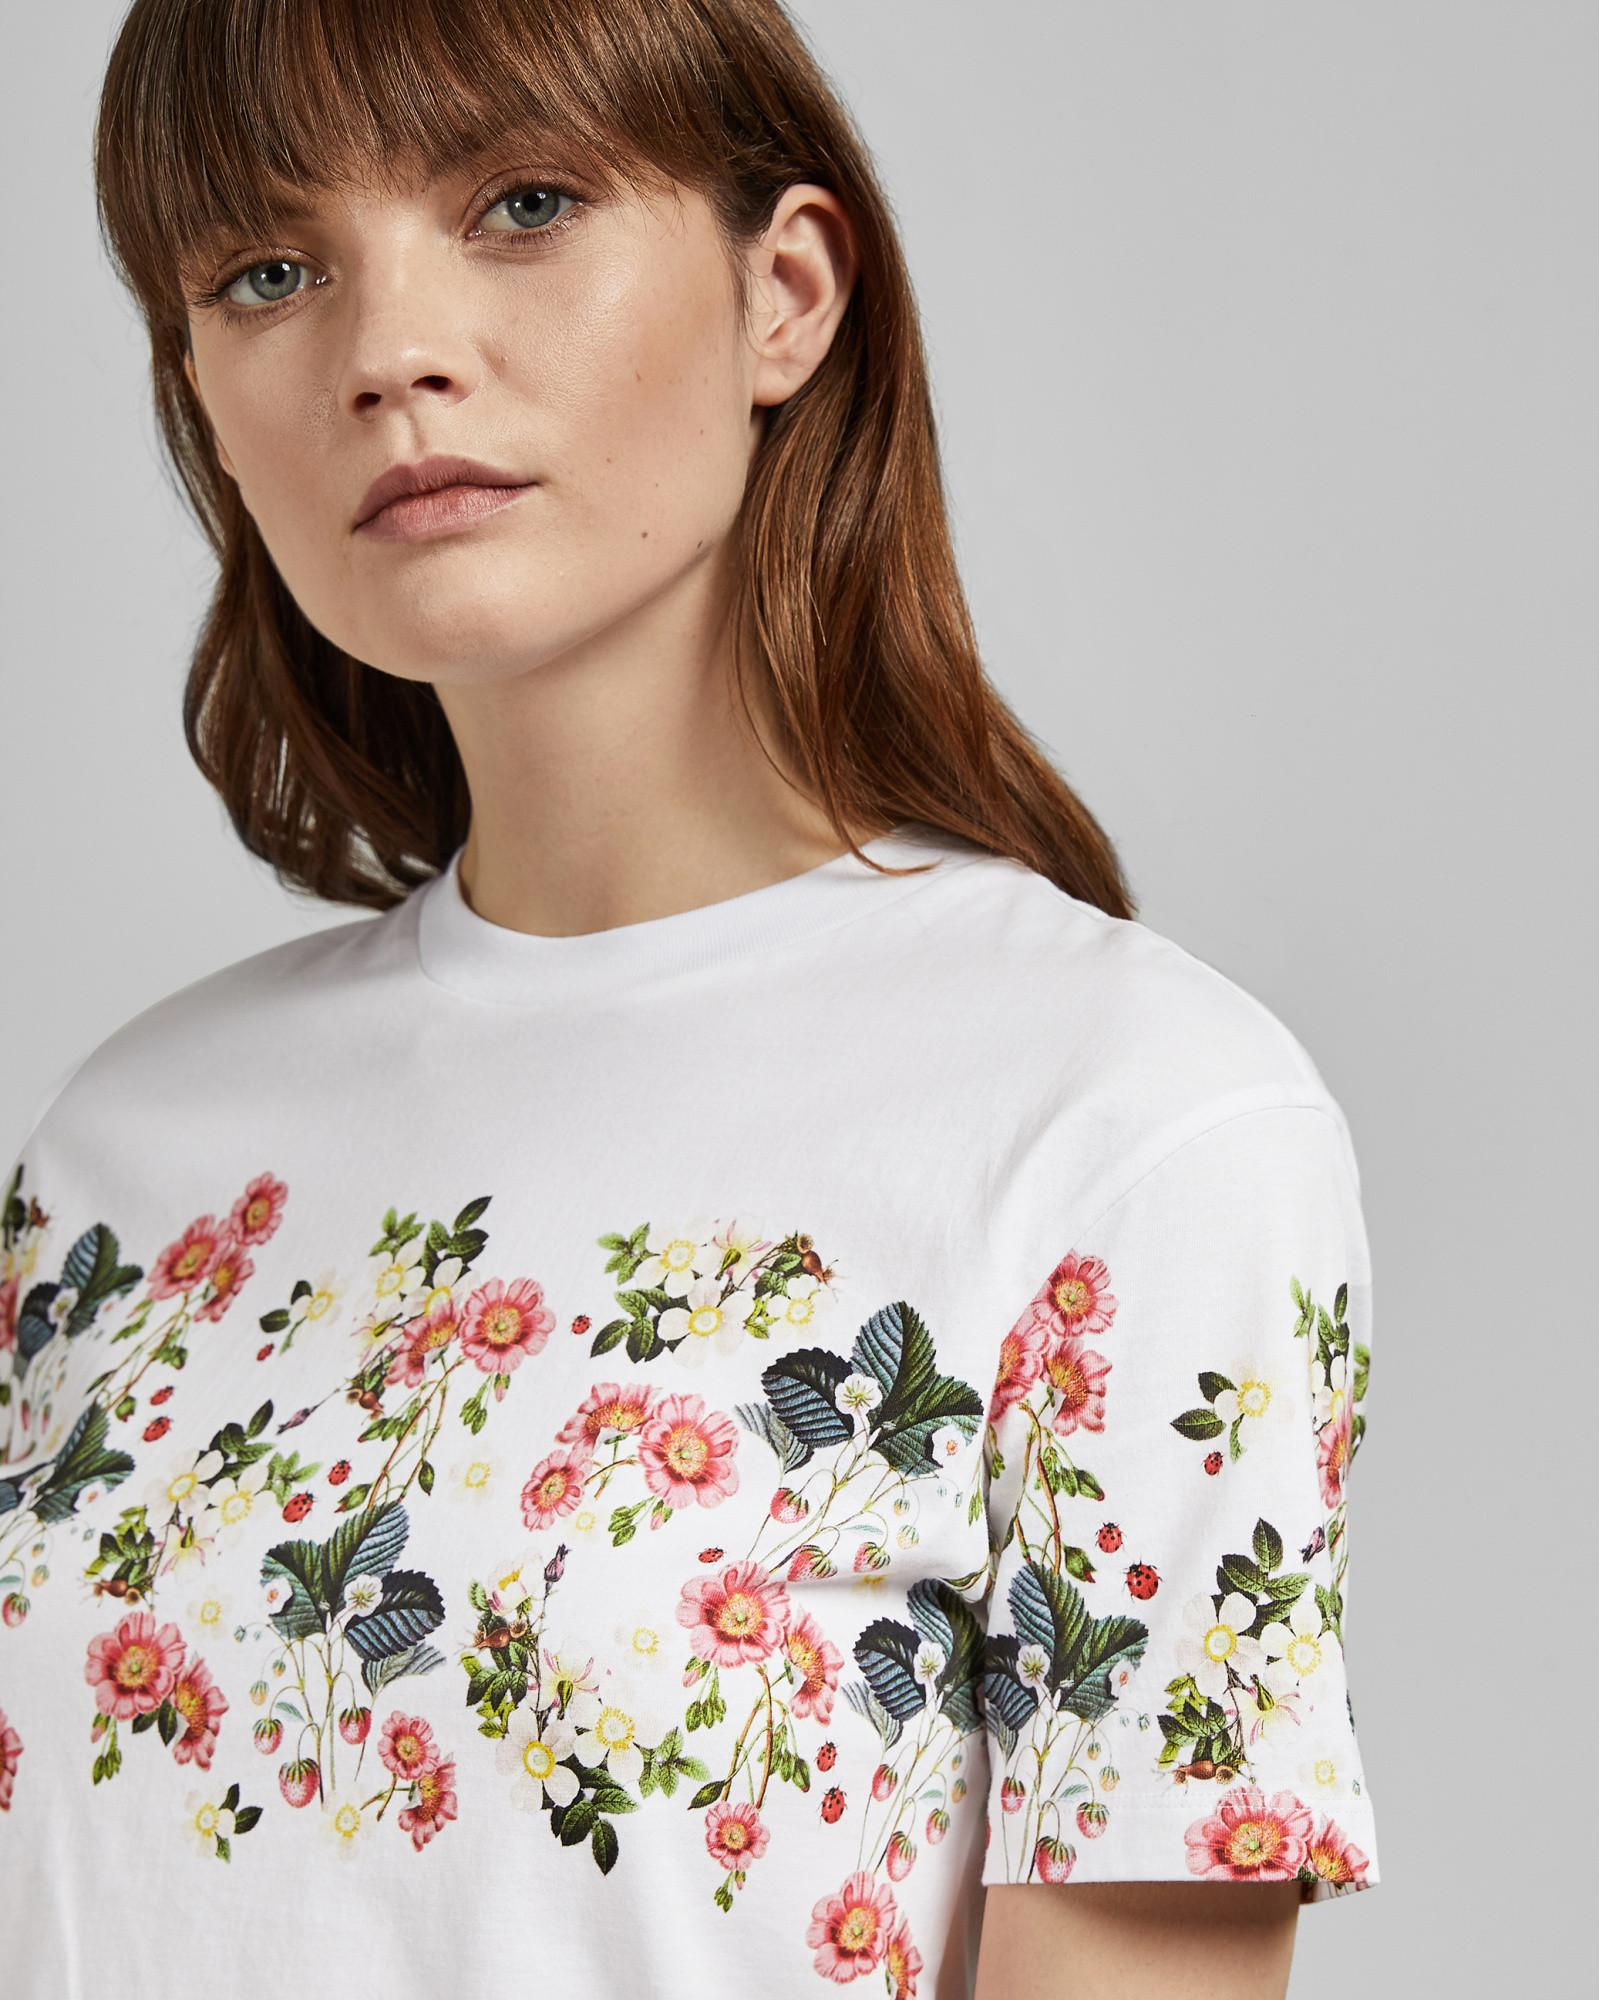 53a0a0434 Ted Baker Oracle Printed Cotton T-shirt in White - Lyst